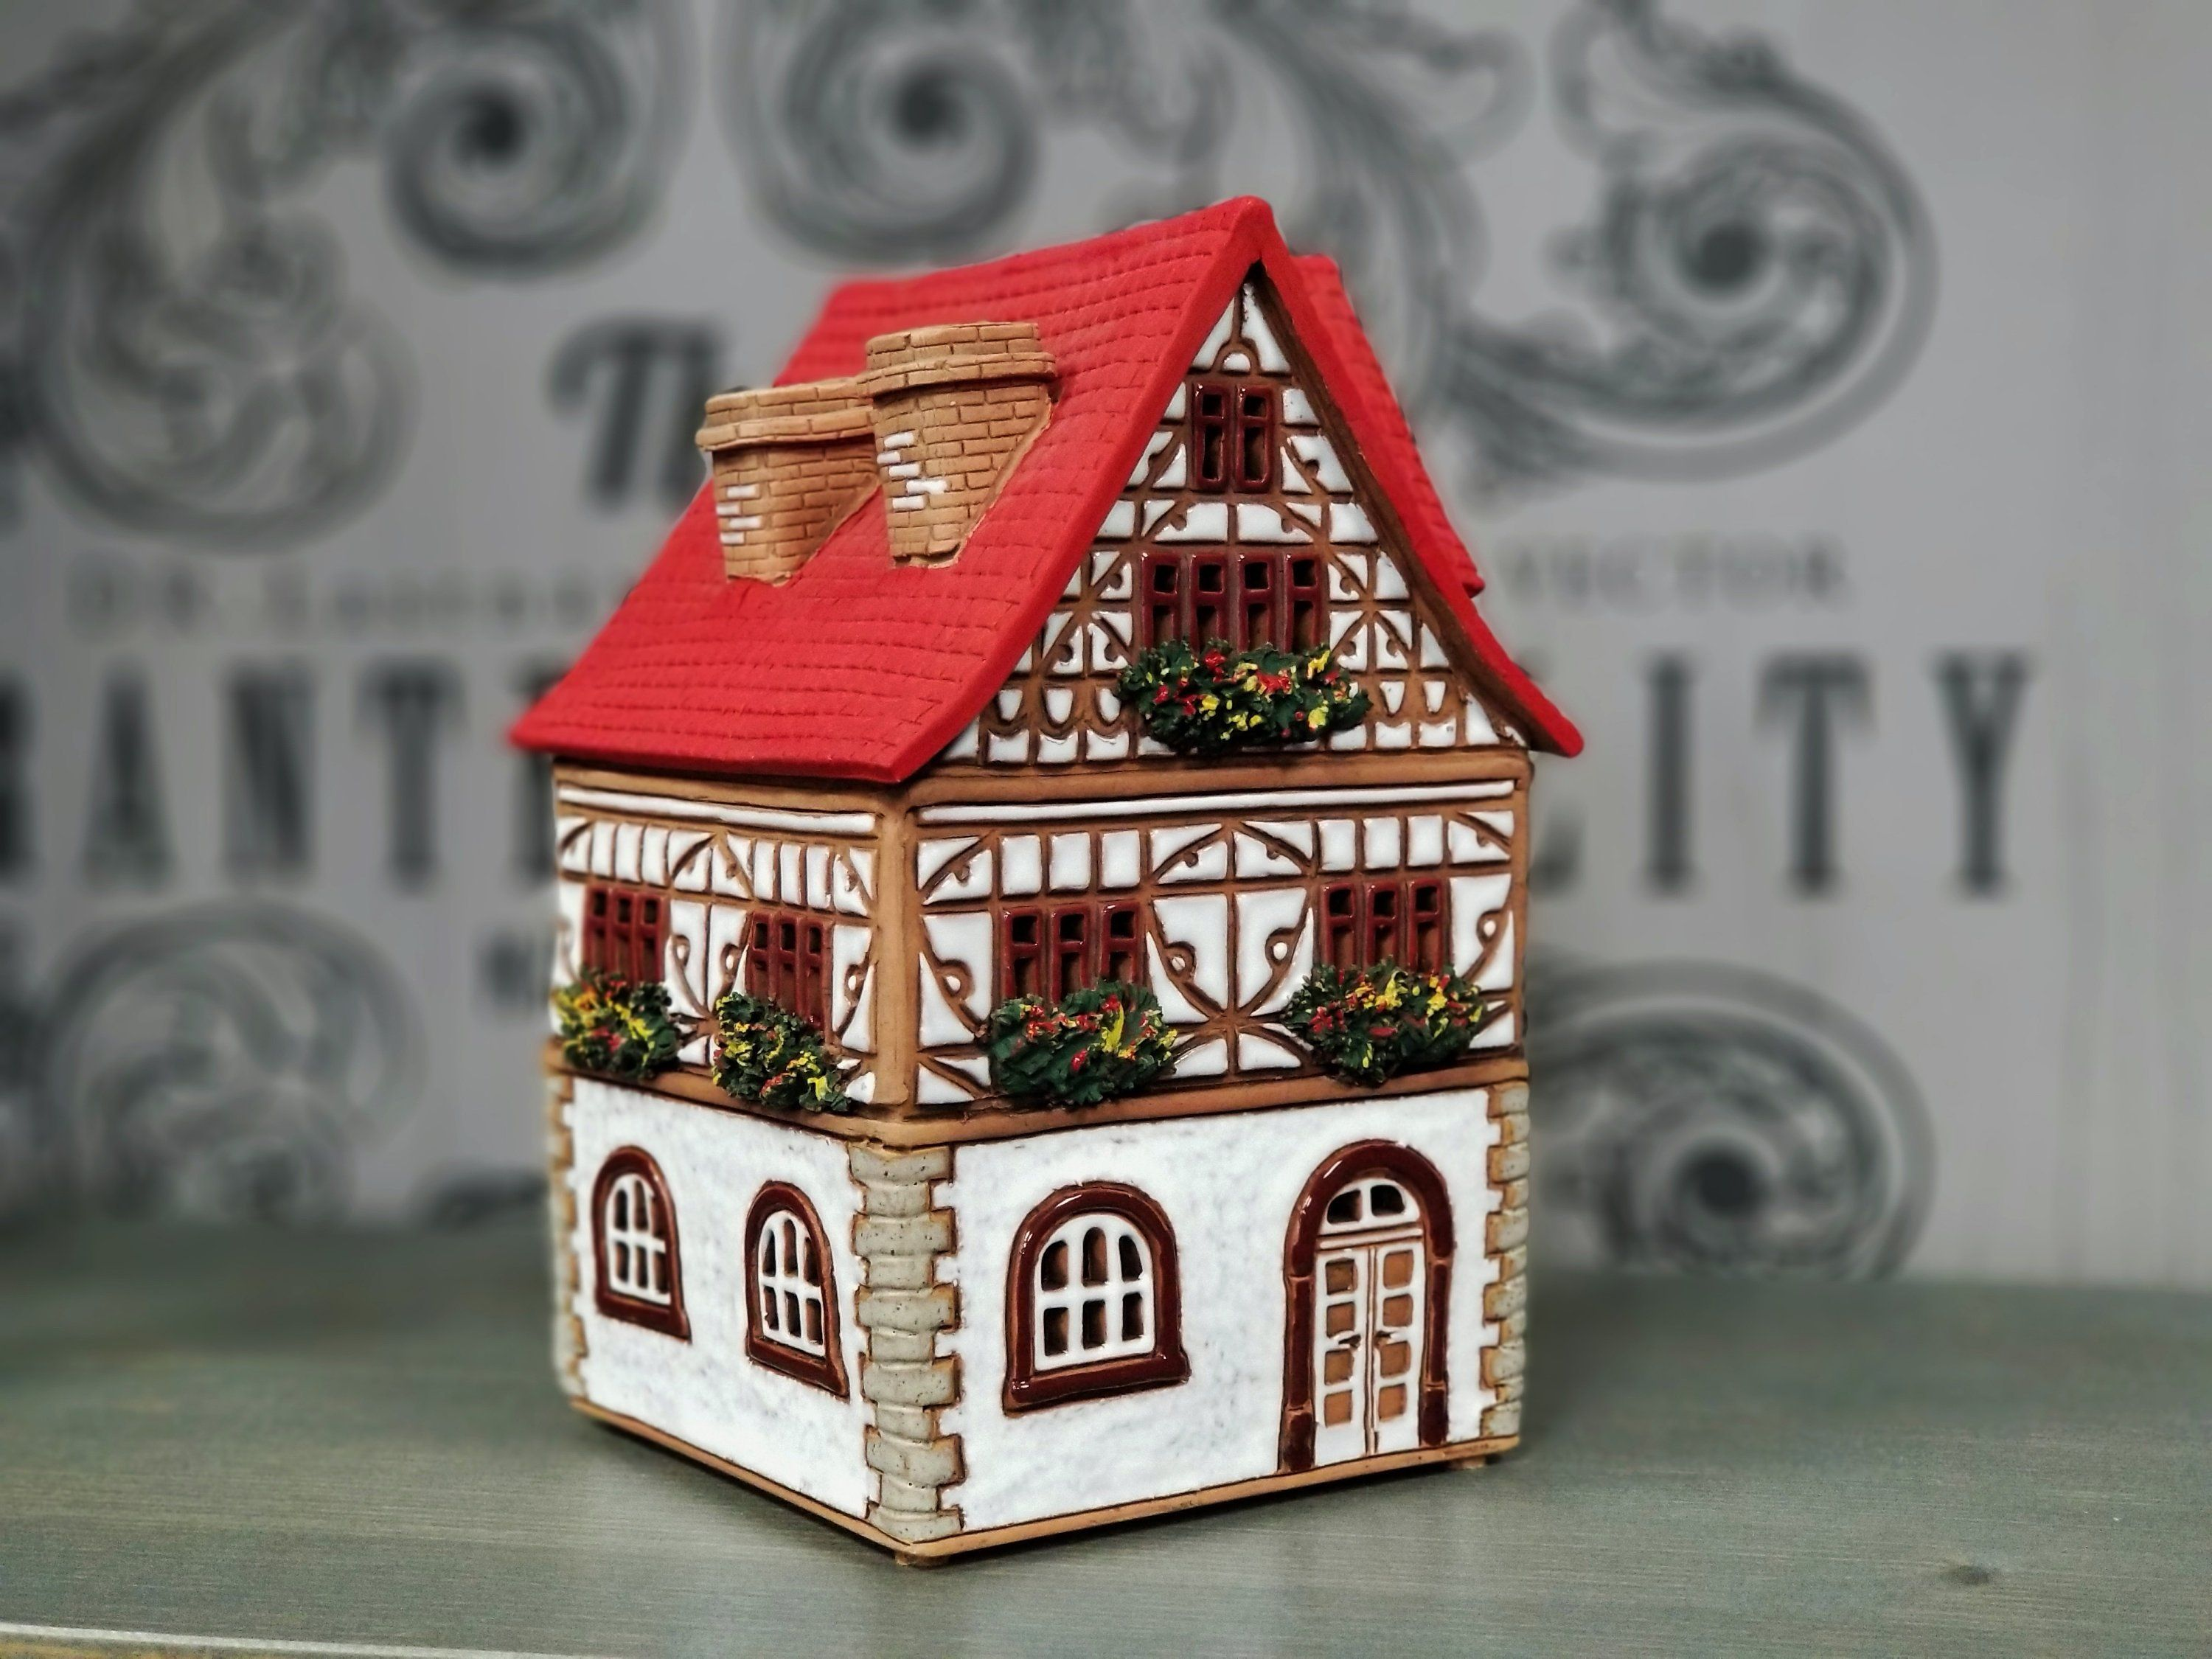 Original Handmade Ceramic Miniature House Decor Gifts Candle Holder For Aroma Oils Use Unique Gift Christmas Gifts Village House Candle Handmade Ceramics Home Candles House Candle Holder